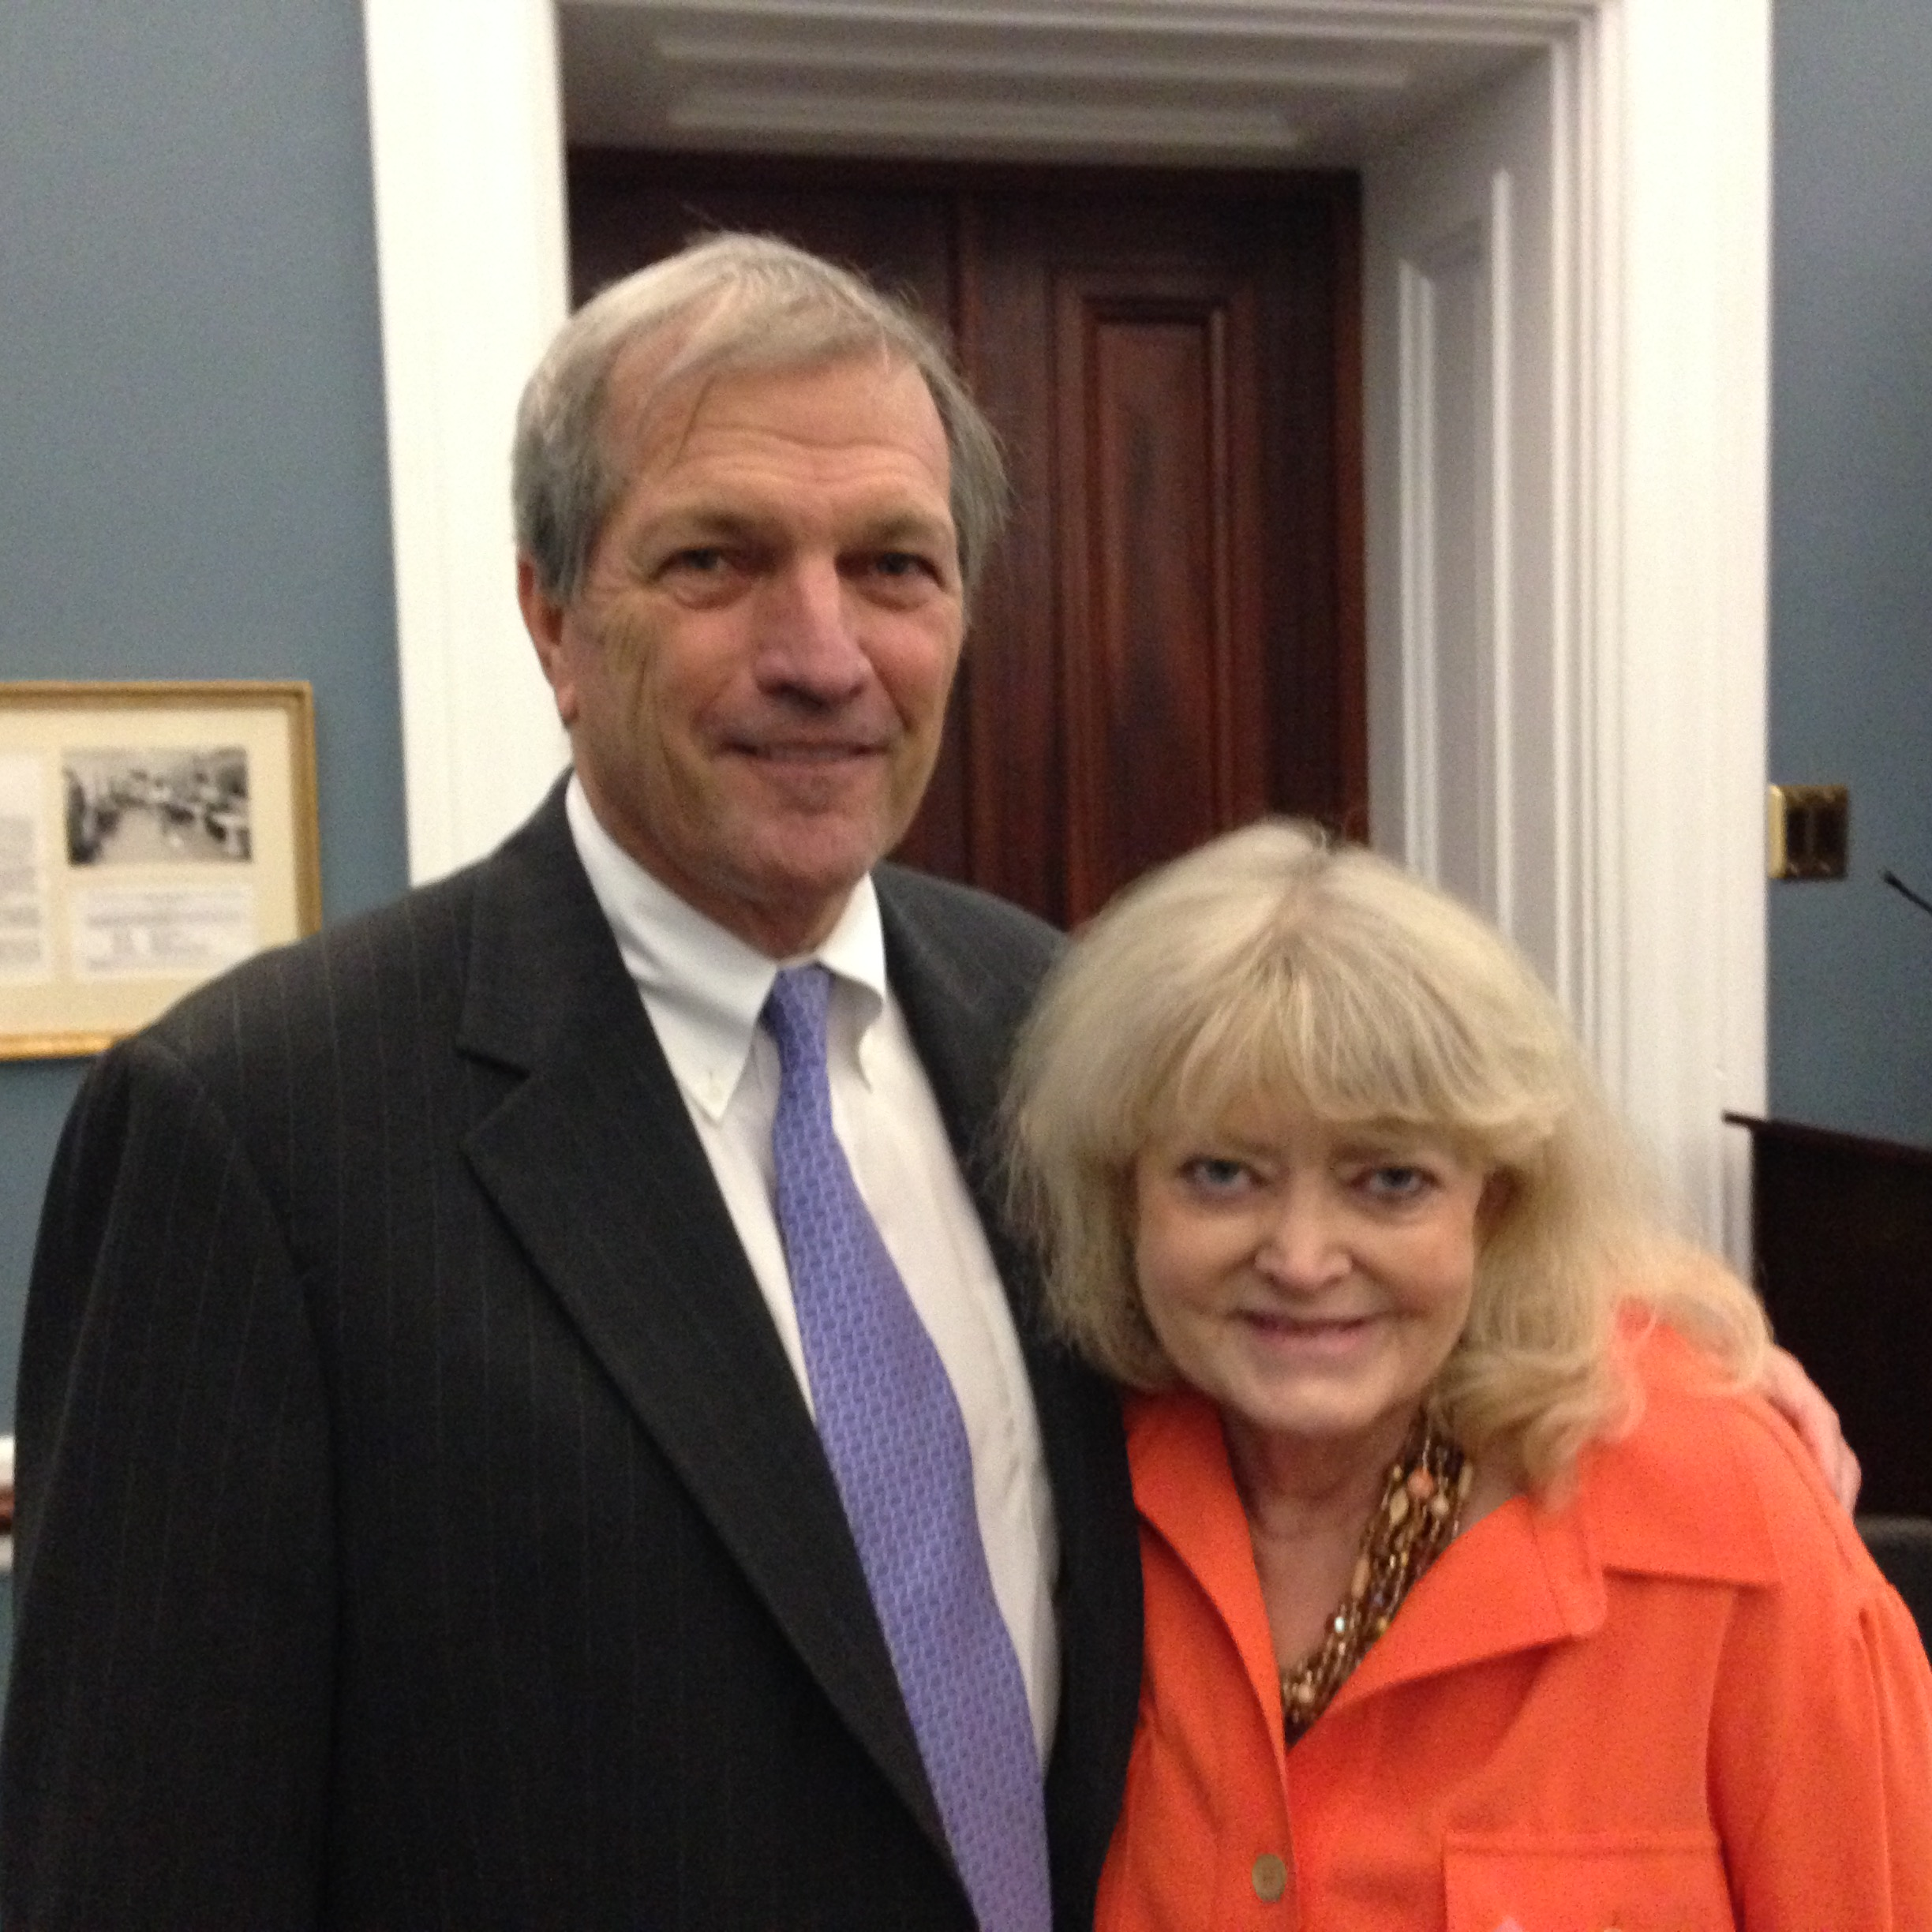 Cyndy with Representative Mark DeSaulnier (D-CA), co-founder of the Friends of Jesuit Colleges and Universities Caucus, during the 2015 AJCU Federal Relations Conference